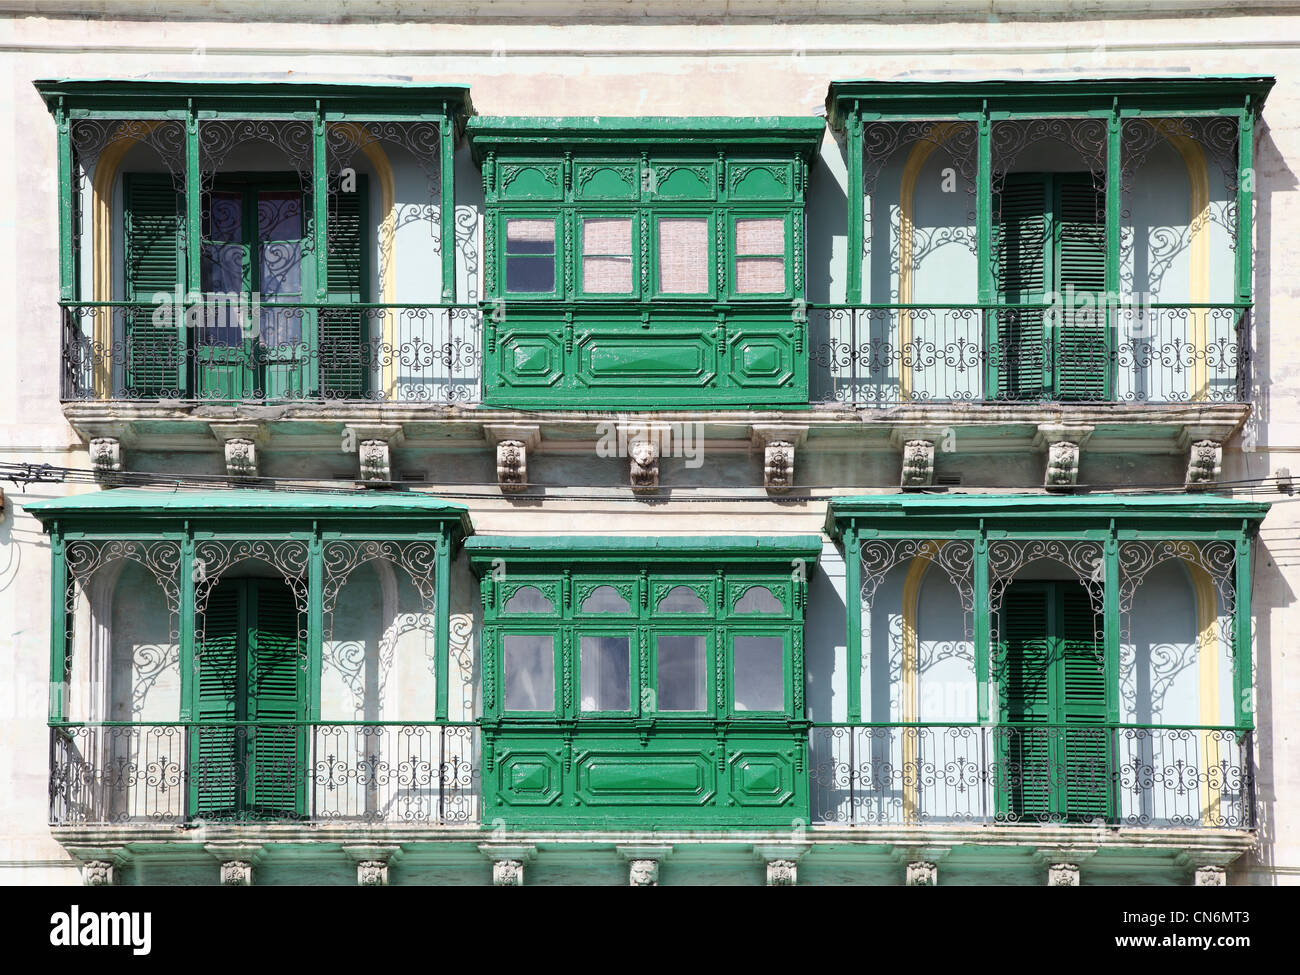 Traditional bay windows and balconies on a town house in Kalkara, Malta - Stock Image